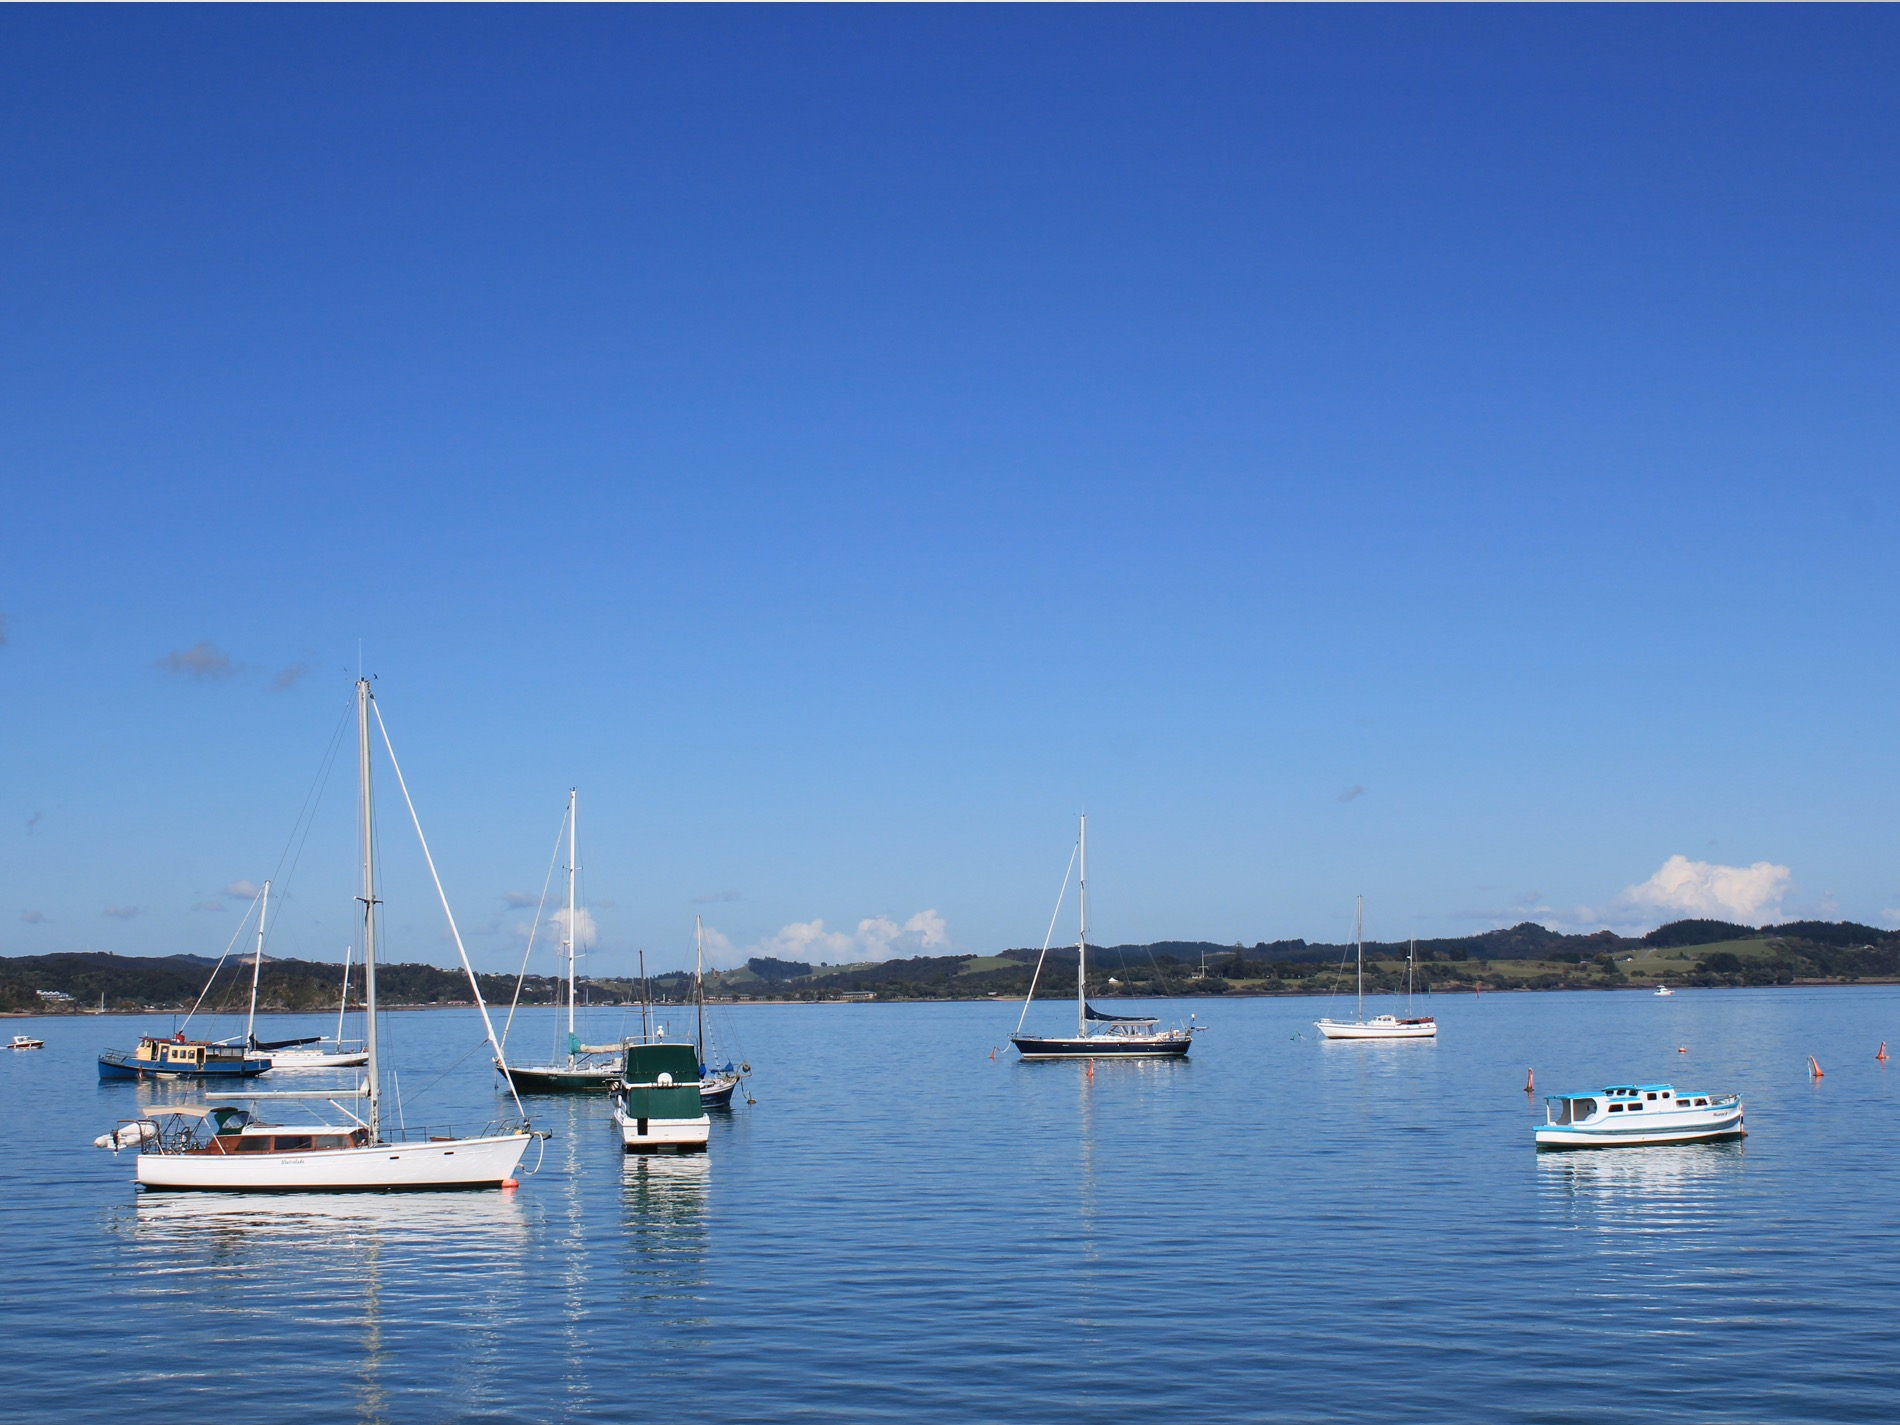 Russell's harbour